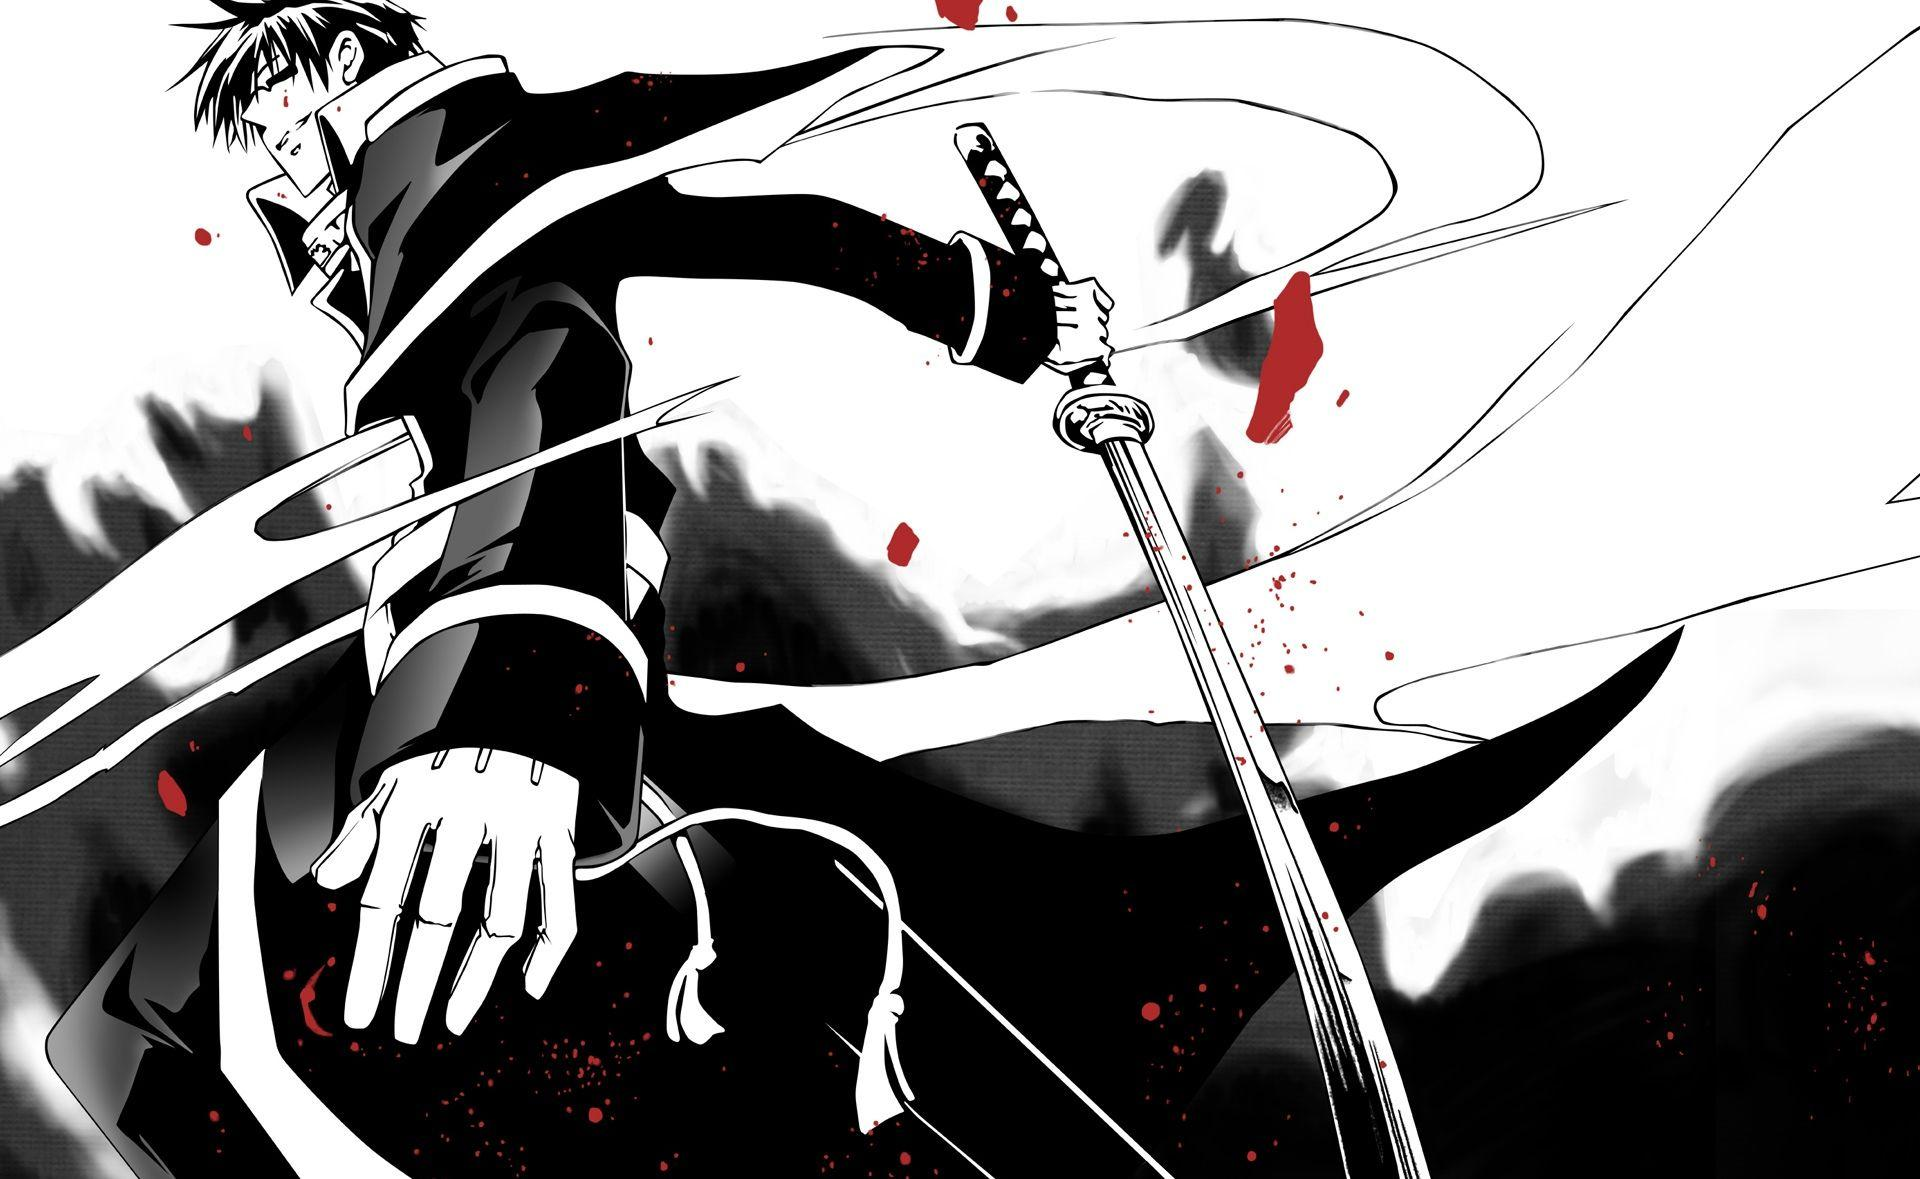 Anime Black And White Scenery Hd Wallpapers Wallpaper Cave,Best Exterior House Paint Colors In India